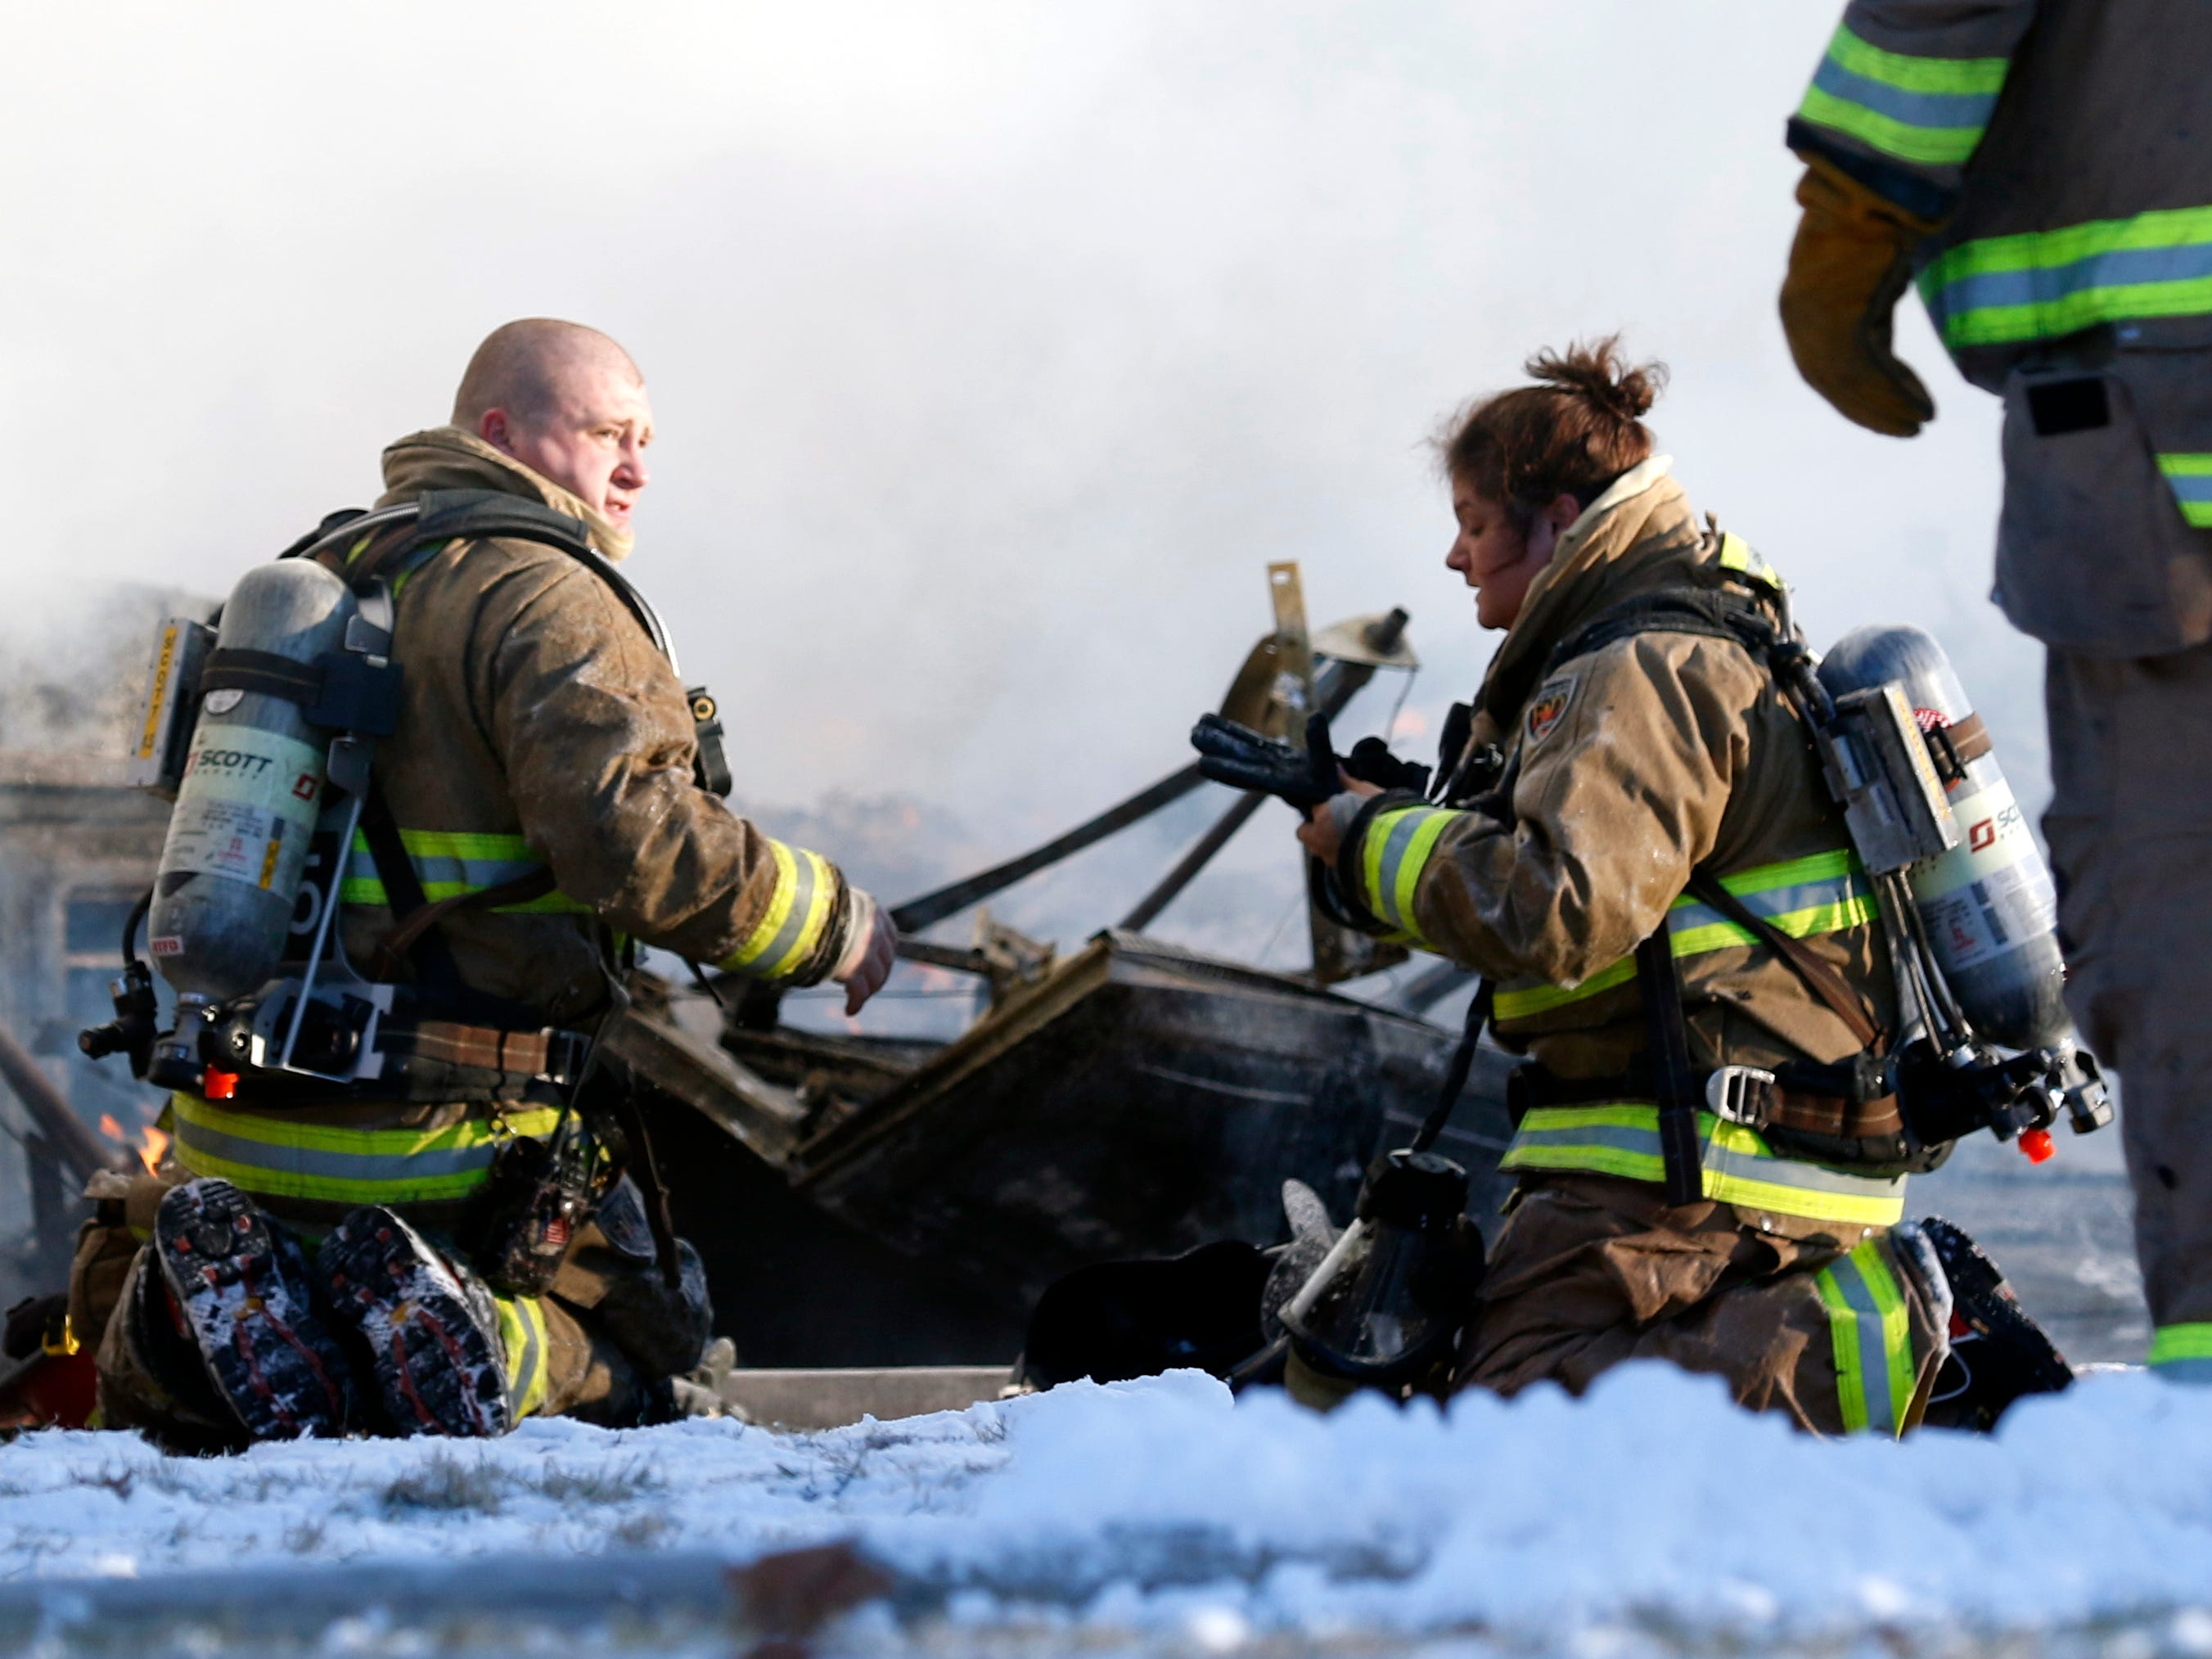 Firefighters rest in front what remains of a garage Wednesday, Jan. 30, 2019, at 9640 Old Rushville Road in Rushcreek Township. Bremen-Rushcreek Township Fire Chief William Duvall said the fire started in the home's garage, burning it to the ground, and spreading into the home itself. Duvall said the home, garage and several vehicles were total losses. No one was injured in the fire.